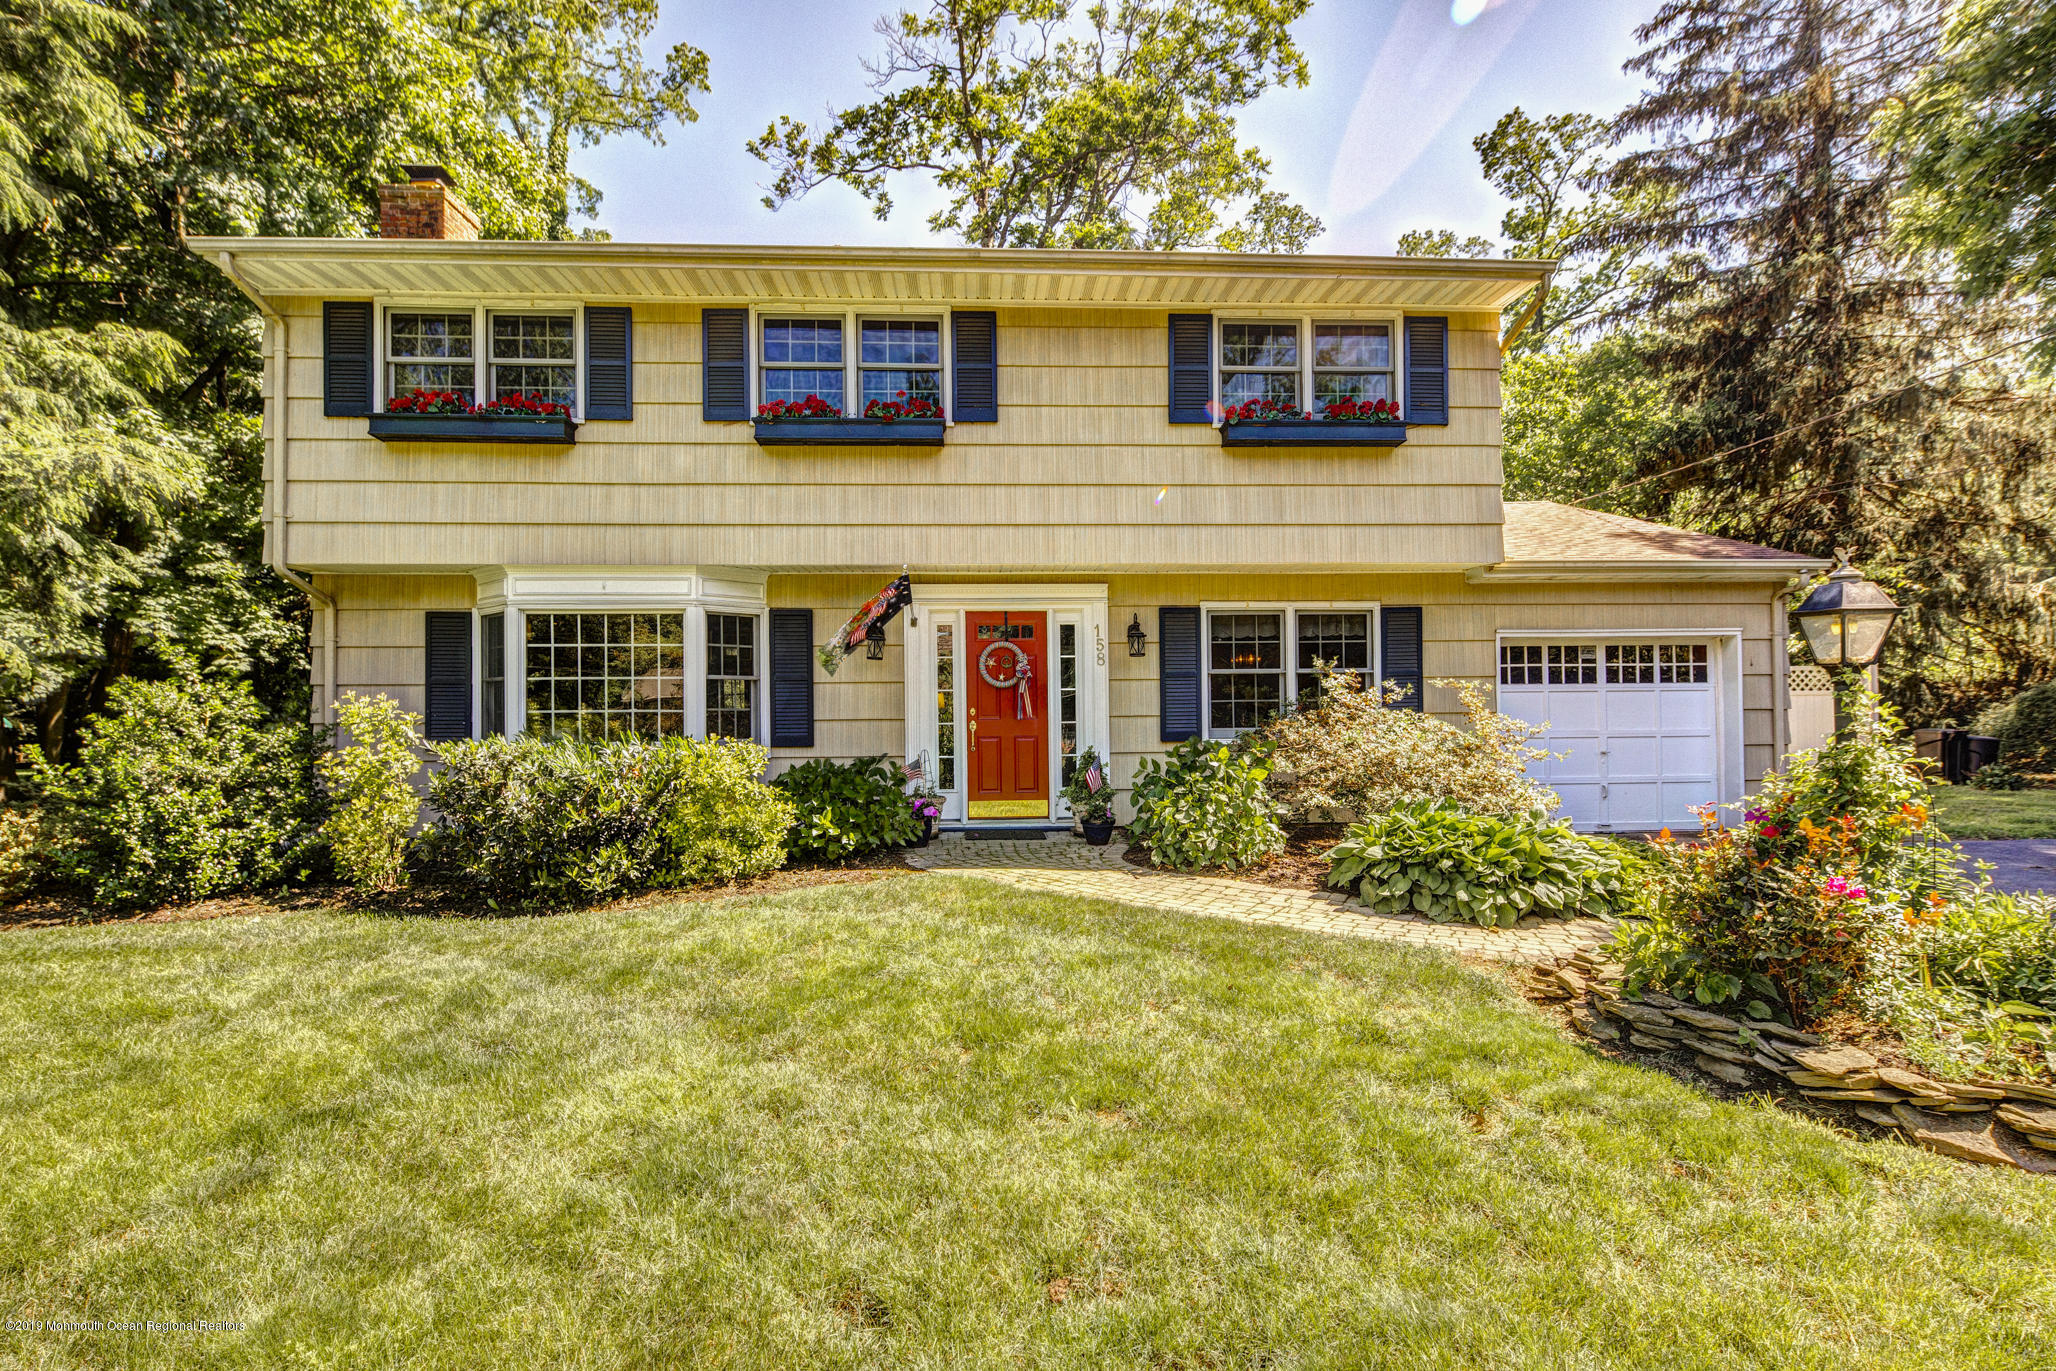 Little Silver Gem...Short distance to the NYC train and a quick trip to the beach! Wide-planked HW floors, custom millwork and built-in cabinetry throughout, make this 4 BR Colonial a MUST-SEE! Sunlight streams through the LR's large bay window, illuminating the brick fireplace surrounded by custom shelving. French doors create a cozy environment. Spacious eat-in kitchen w/copious cabinets, recessed lighting, marble counters, unique backsplash and SS appl. Sliding doors open to a large private, tree-lined backyard & Koi pond. Take in the view of the park-like property from the brightly lit family room with 20' ceilings. The bathroom includes wainscoting, Jacuzzi tub and radiant heat floors! Move right in to experience LS excellent schools, small-town feel and strong sense of community.